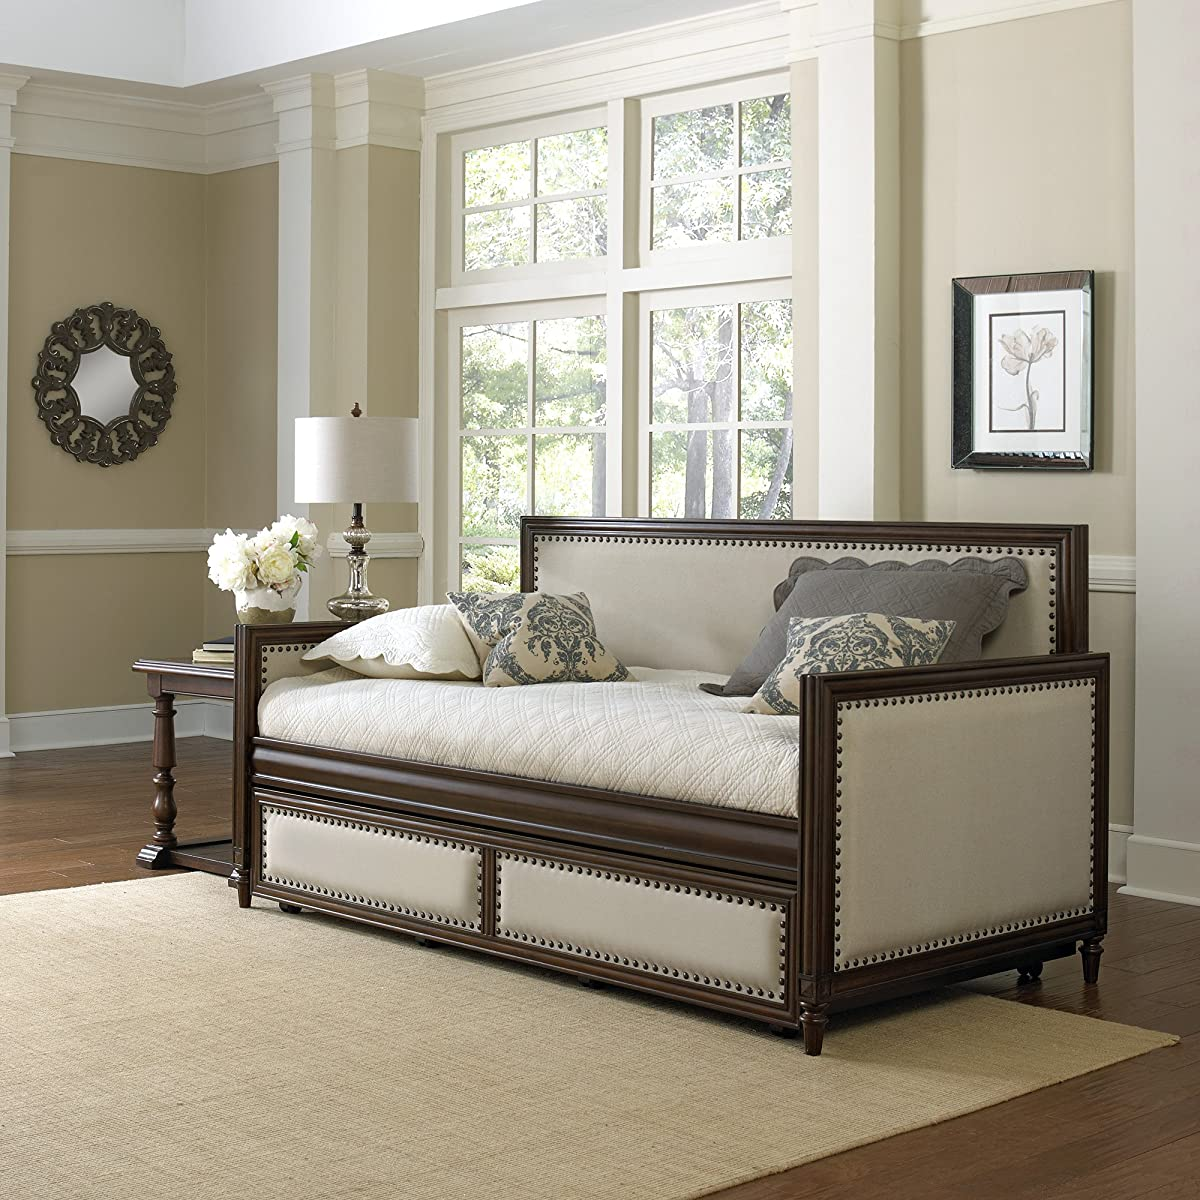 Grandover Wood Daybed With Cream Upholstered Panels And